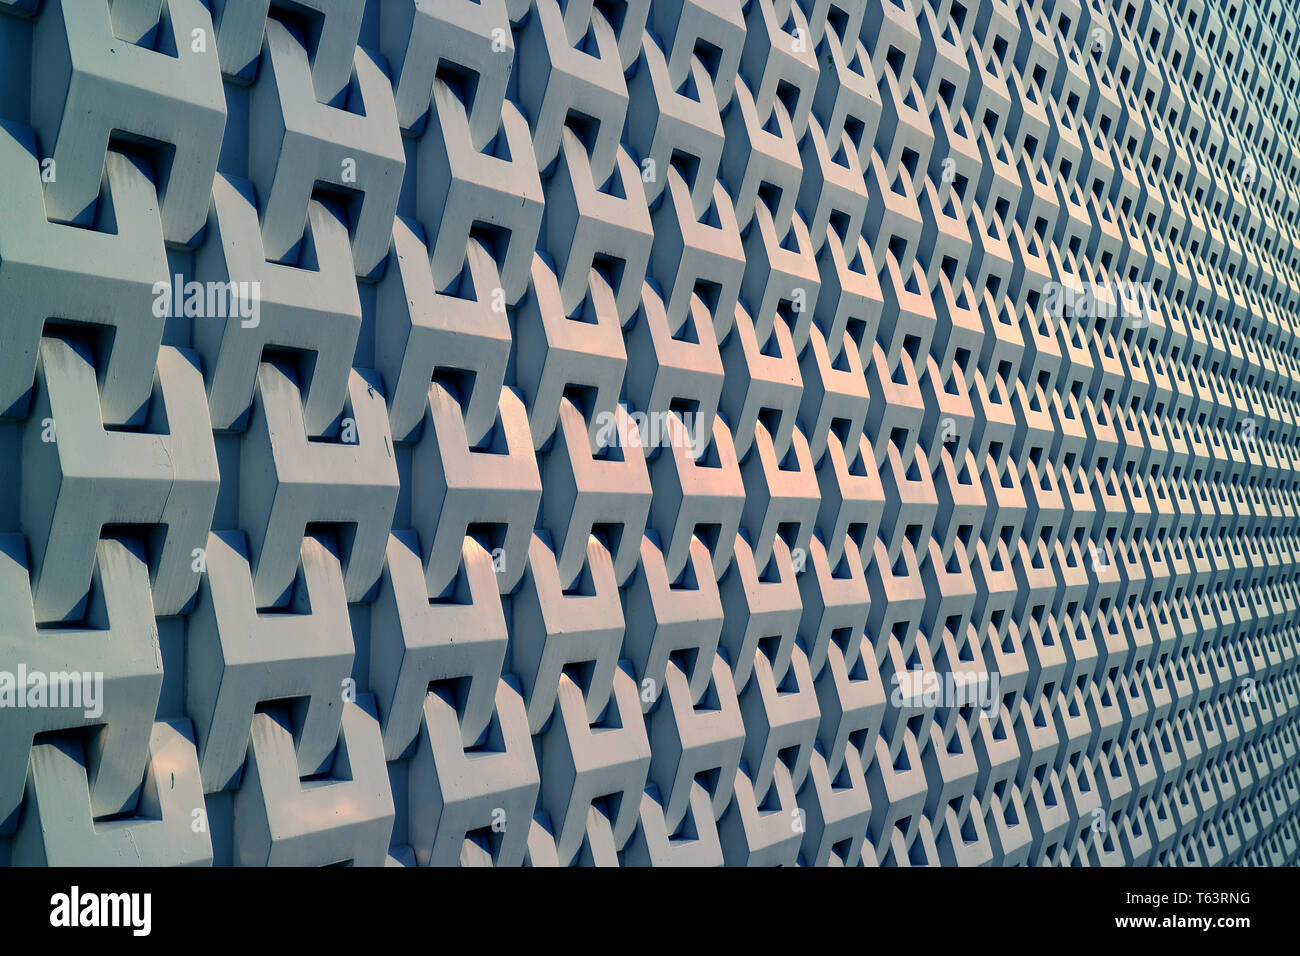 Diminishing perspective of a building 3D decorative pattern metallic grey outer wall - Stock Image